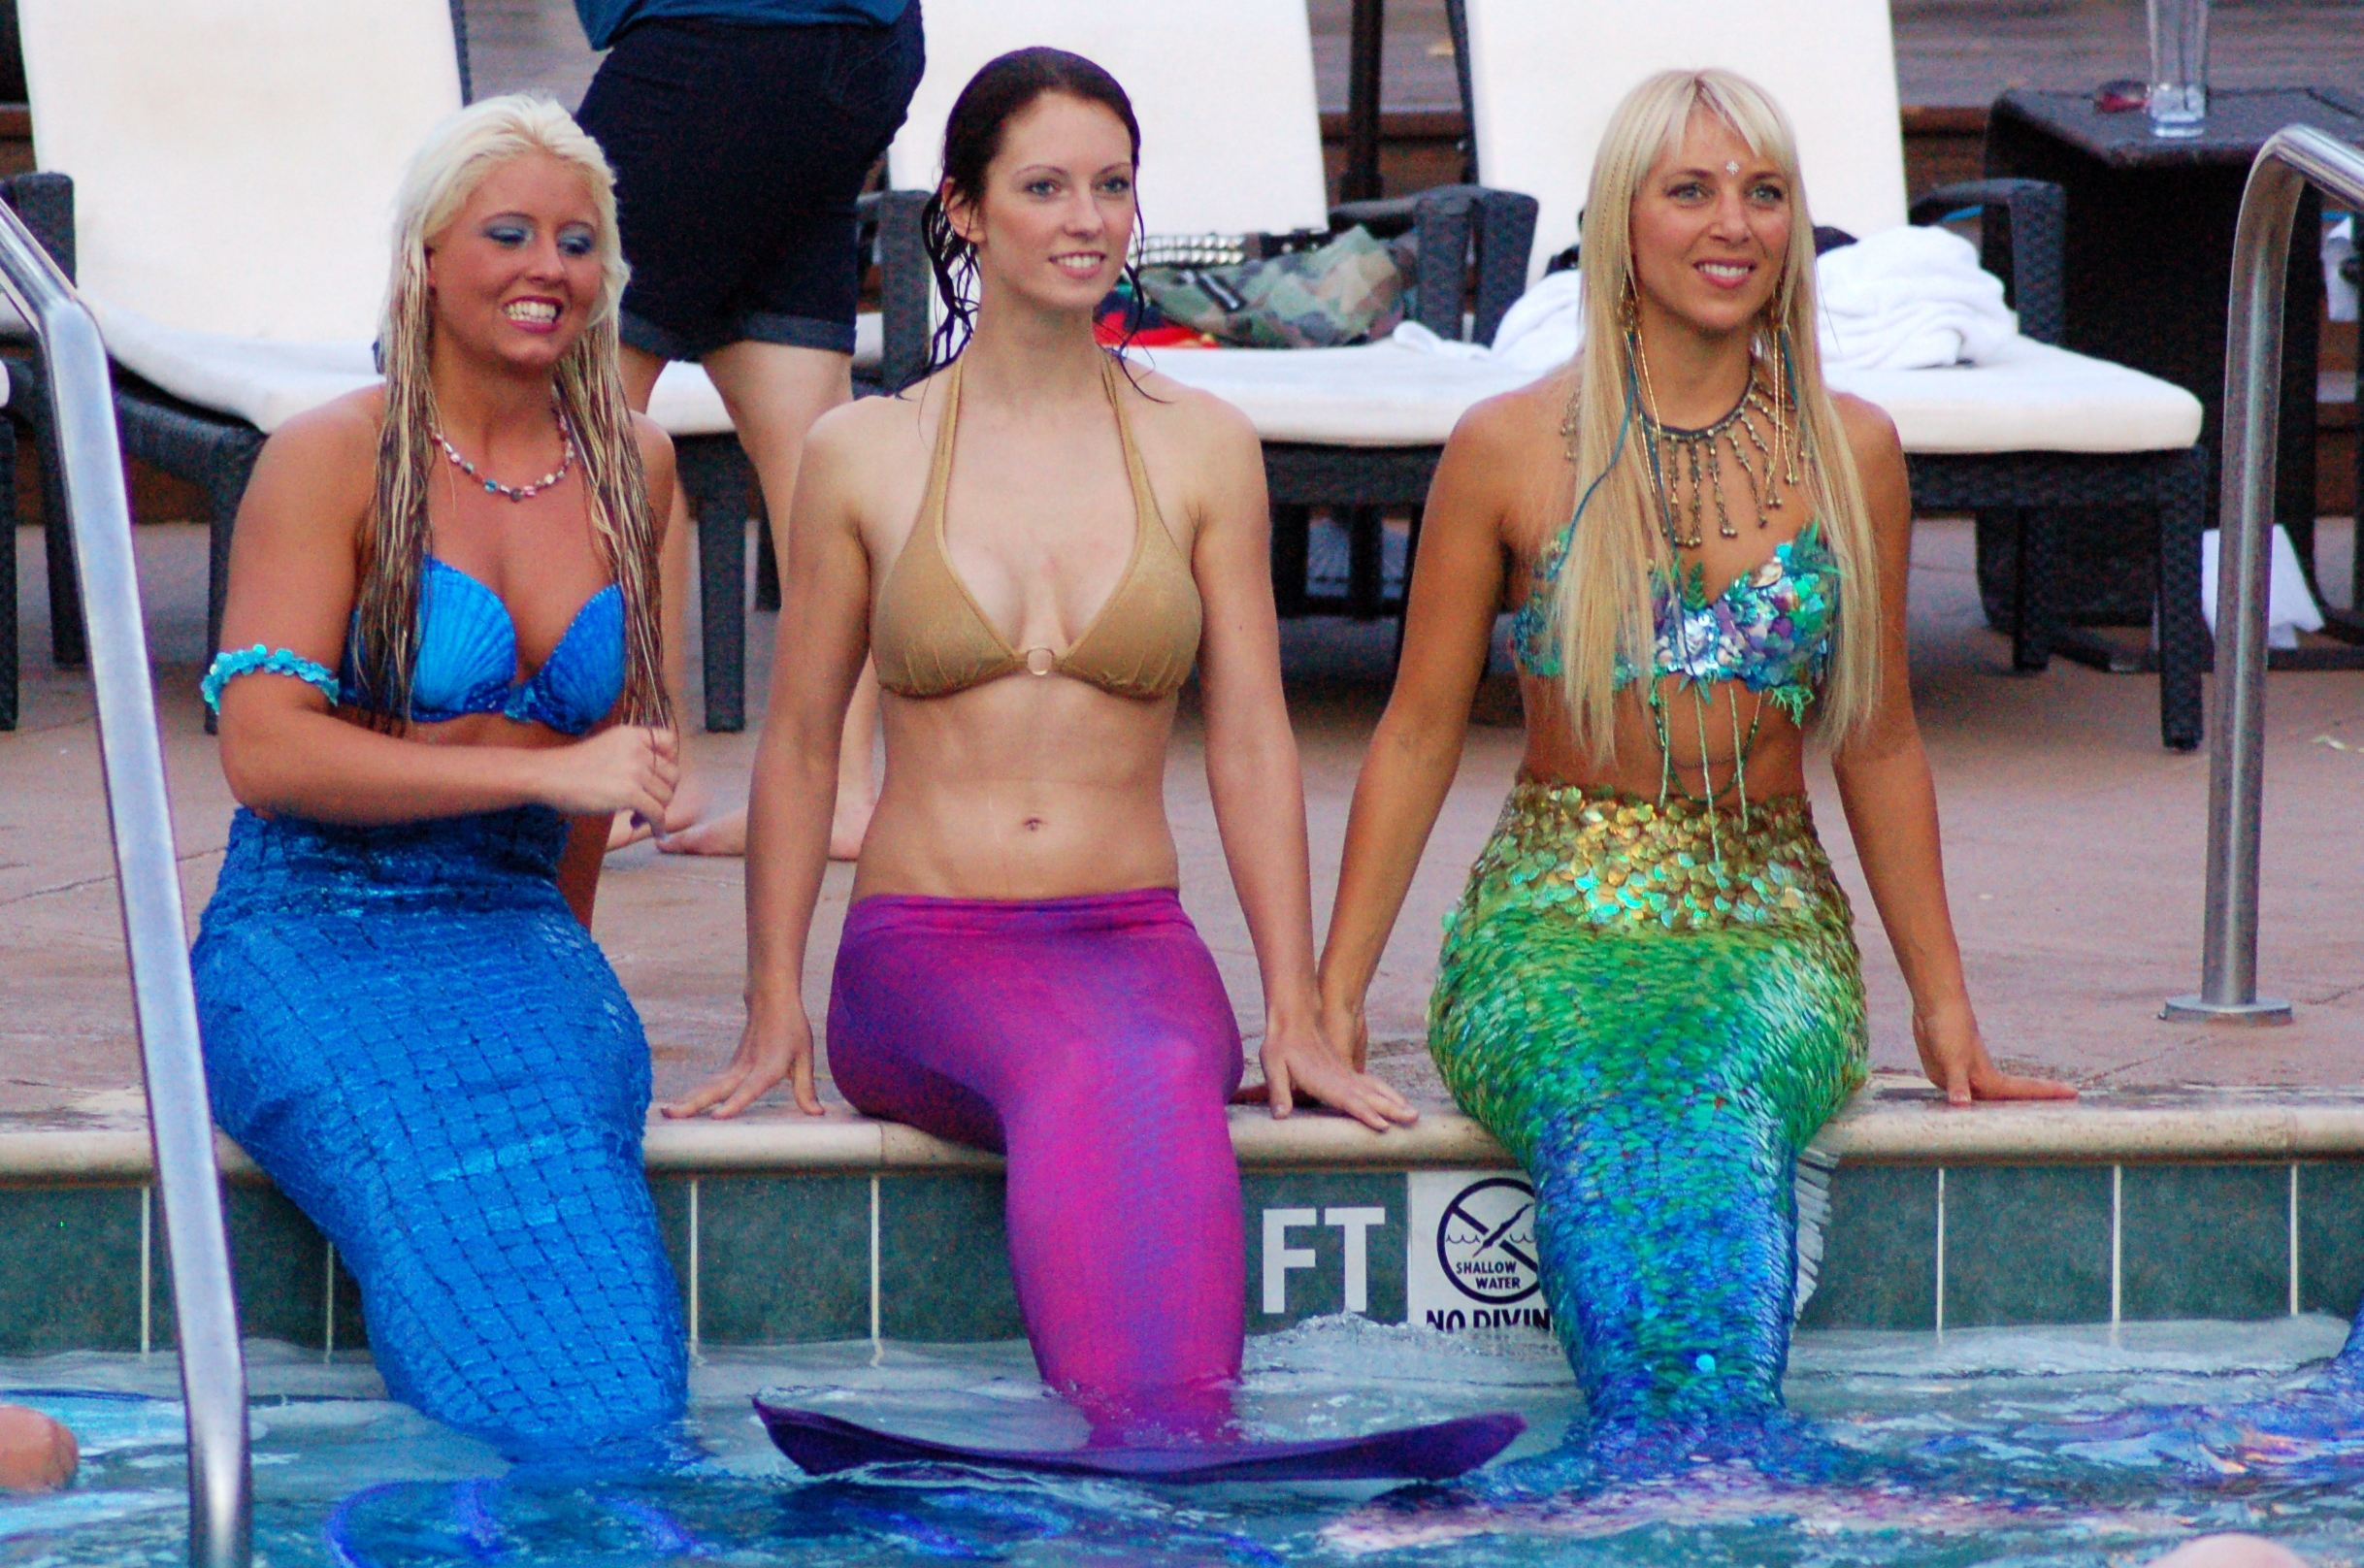 Mermaid Convention Photography Photo #278